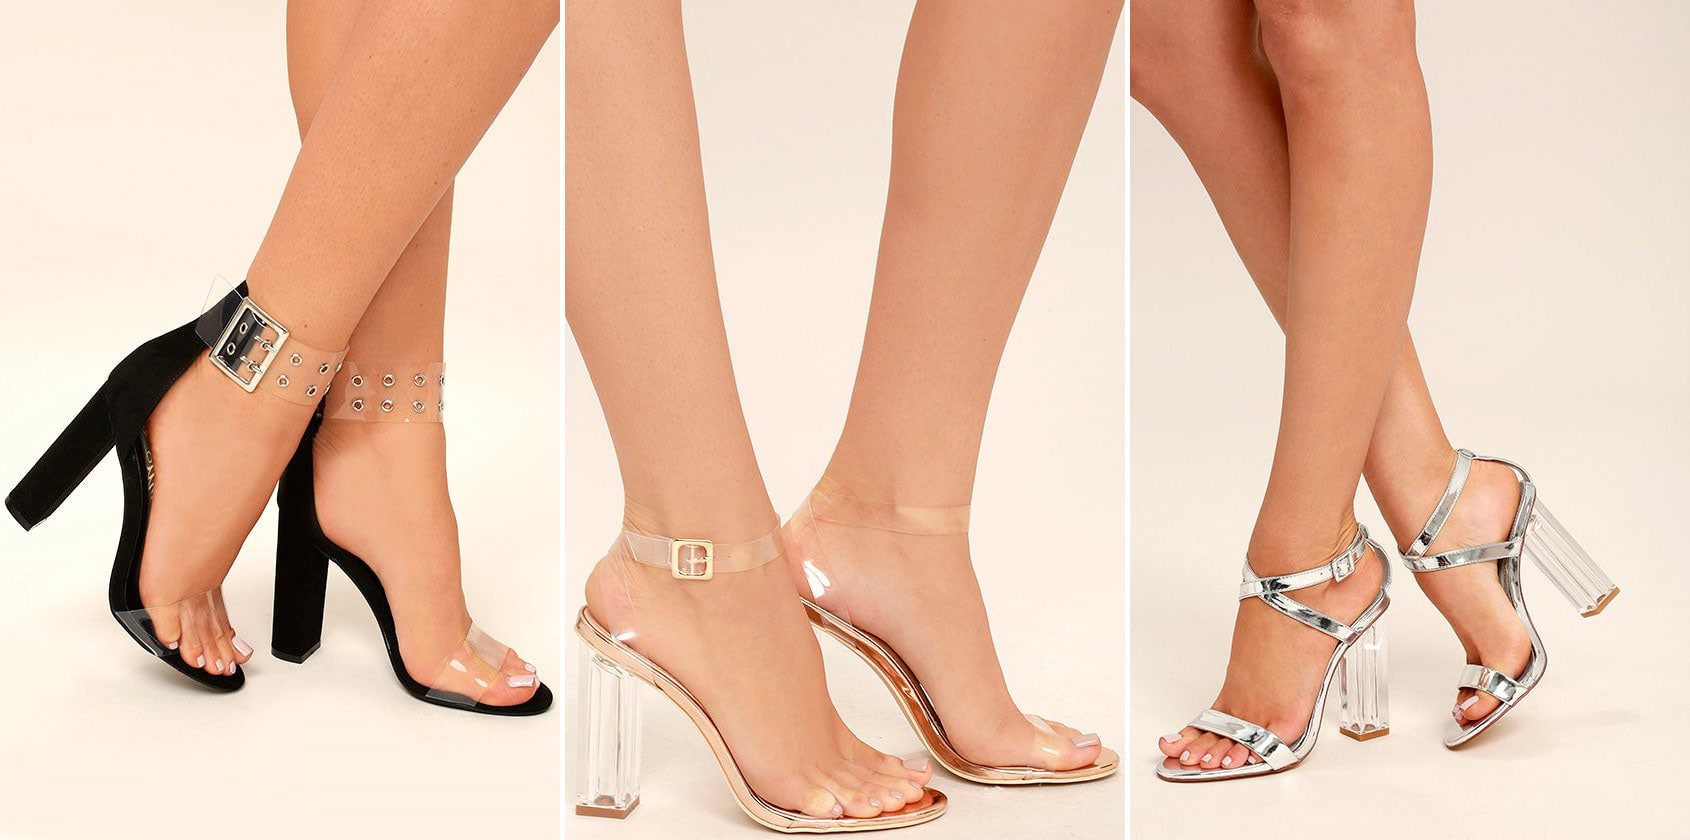 prom shoe styles - lucite